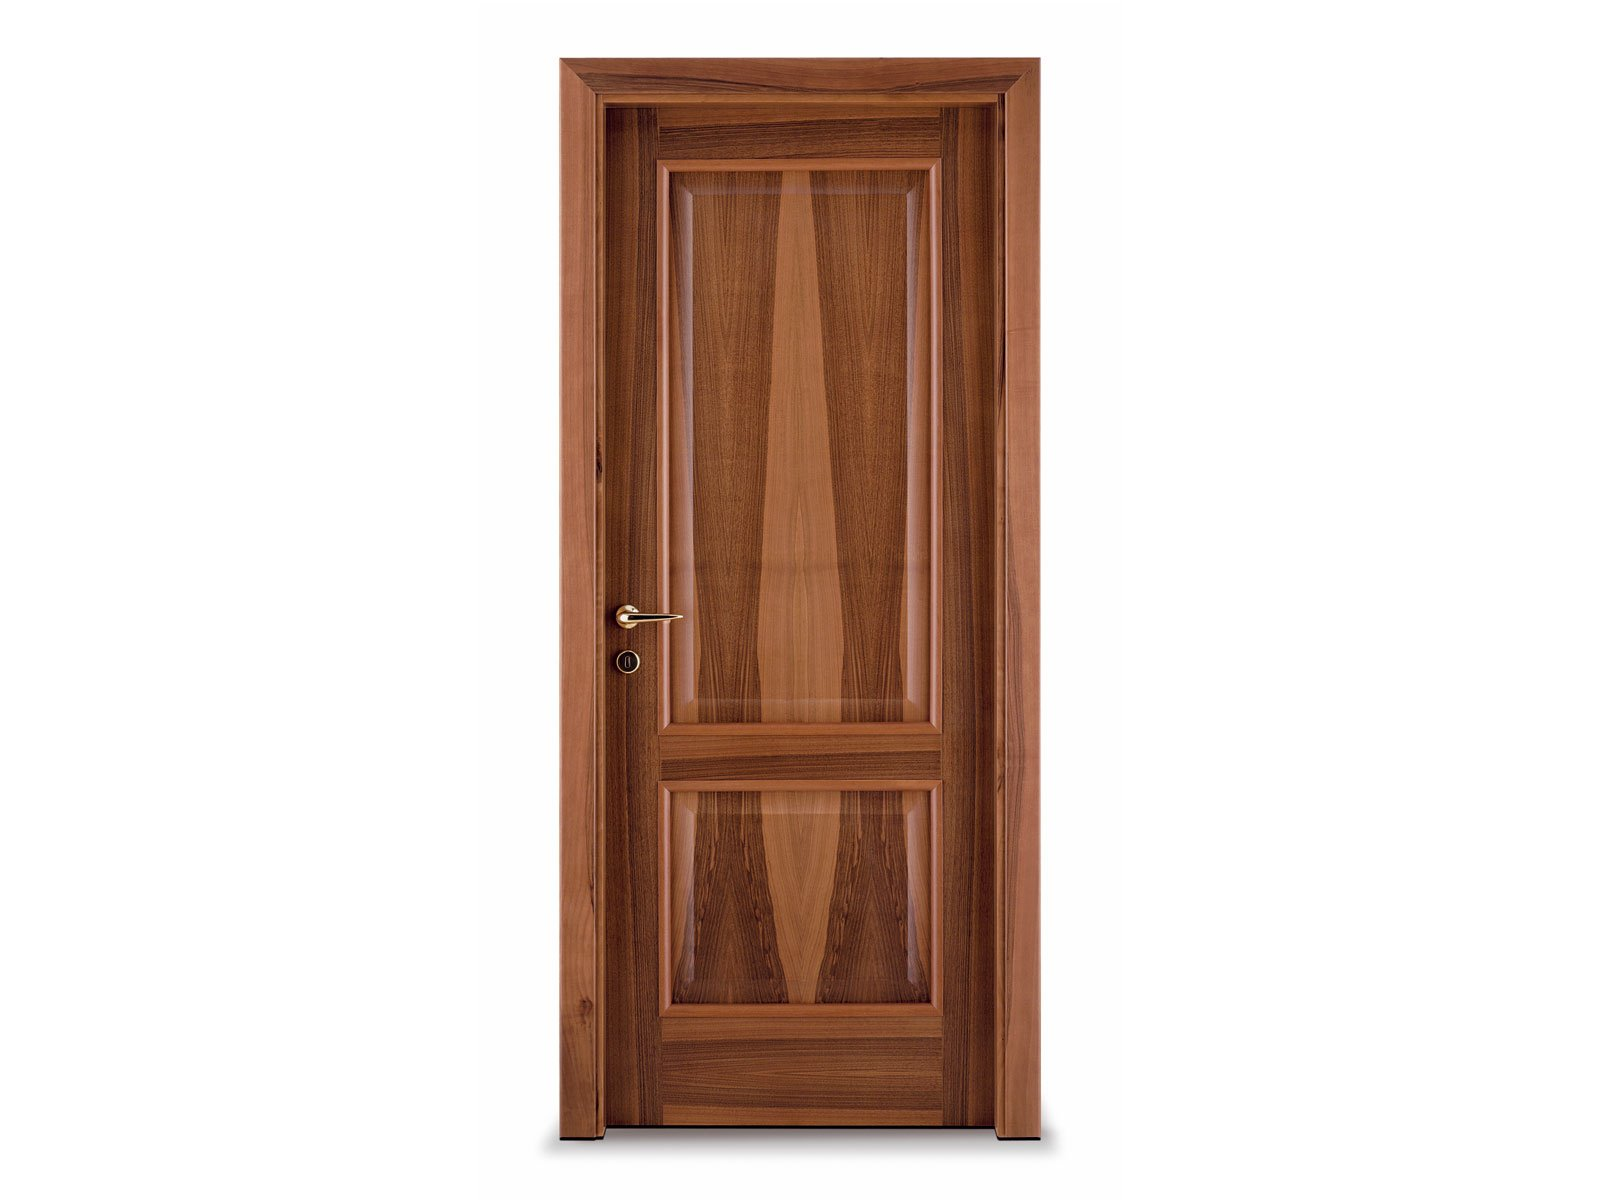 Hinged Wooden Door Classic By Ghizzi Benatti